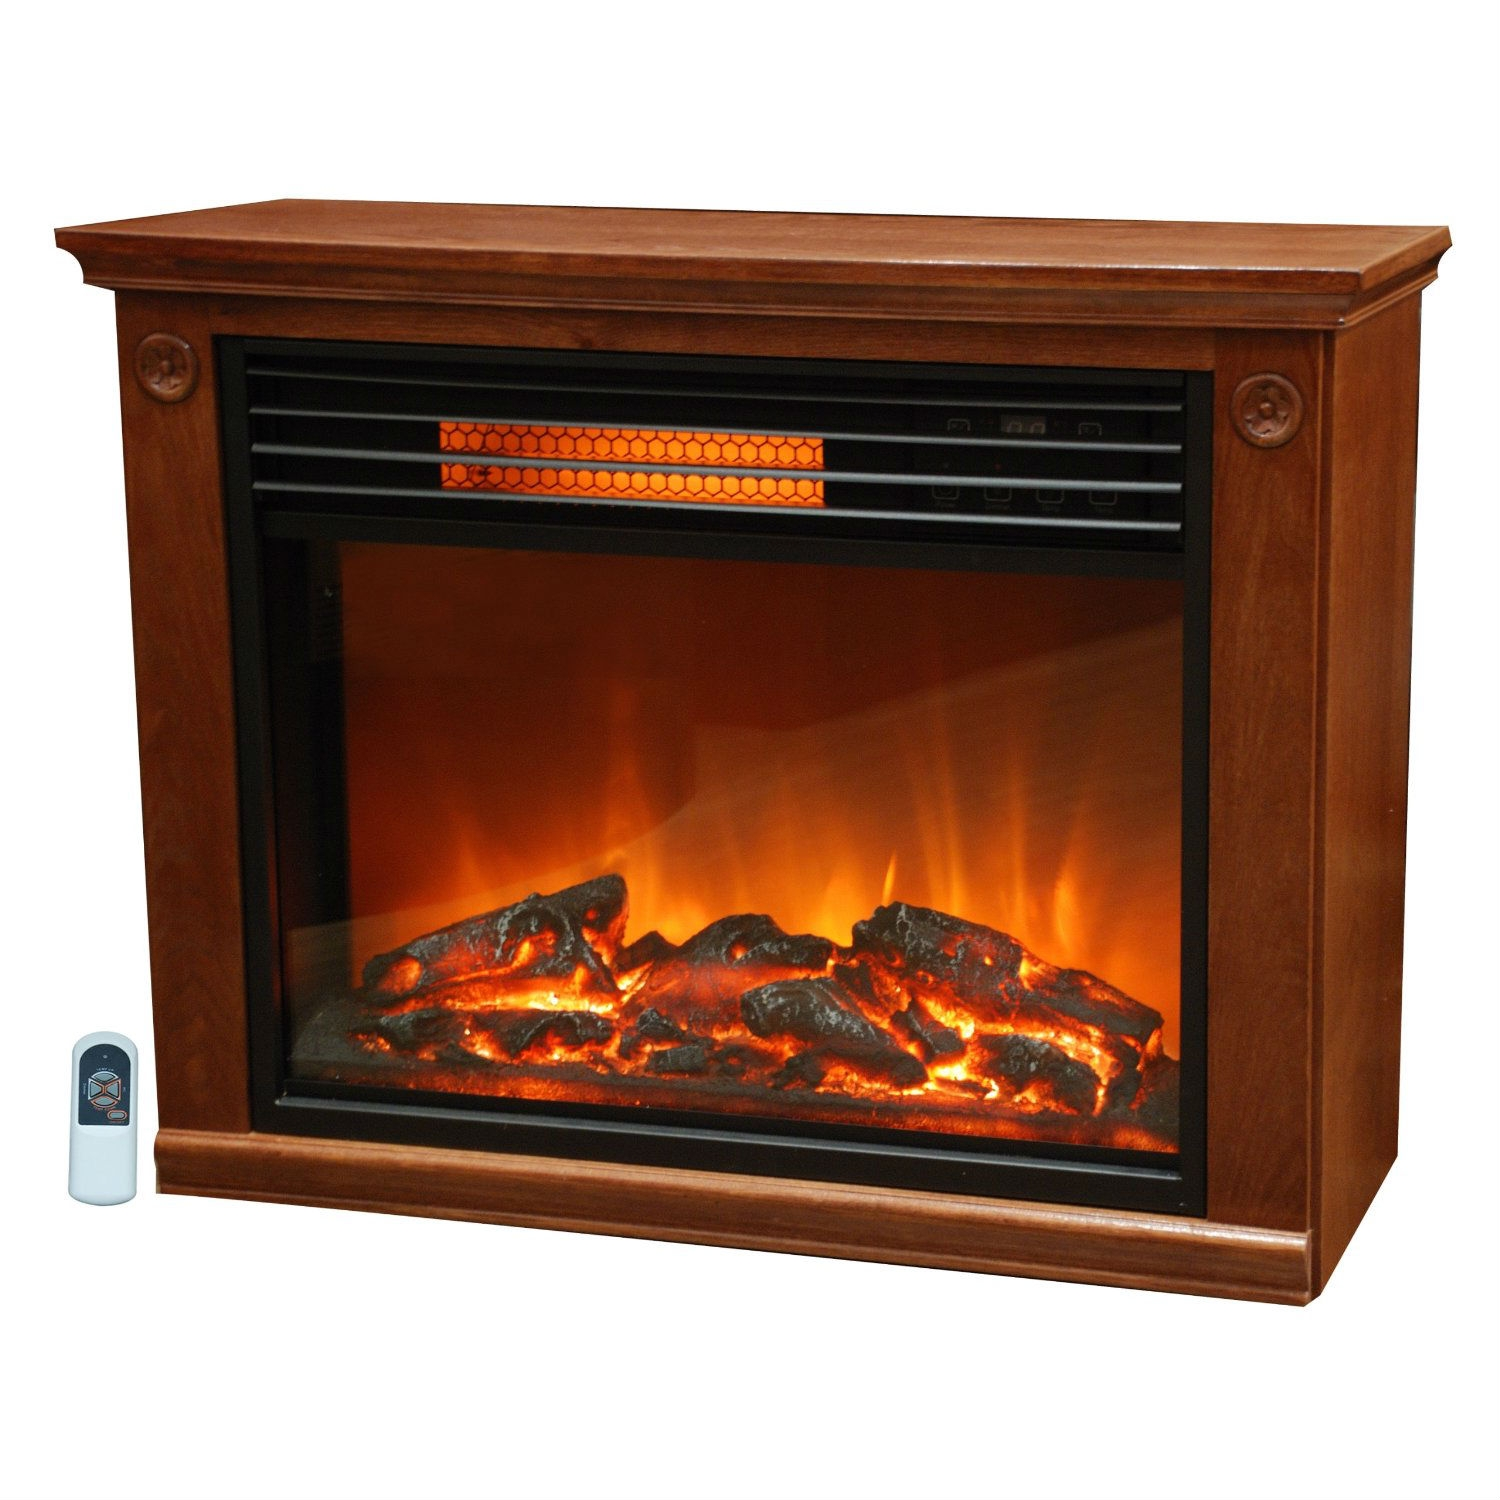 amazon wall fireplace mount direct tv blower reviews heater smokeless storage free standing insert freestanding unit electric fireplaces with space mantel corner stoves